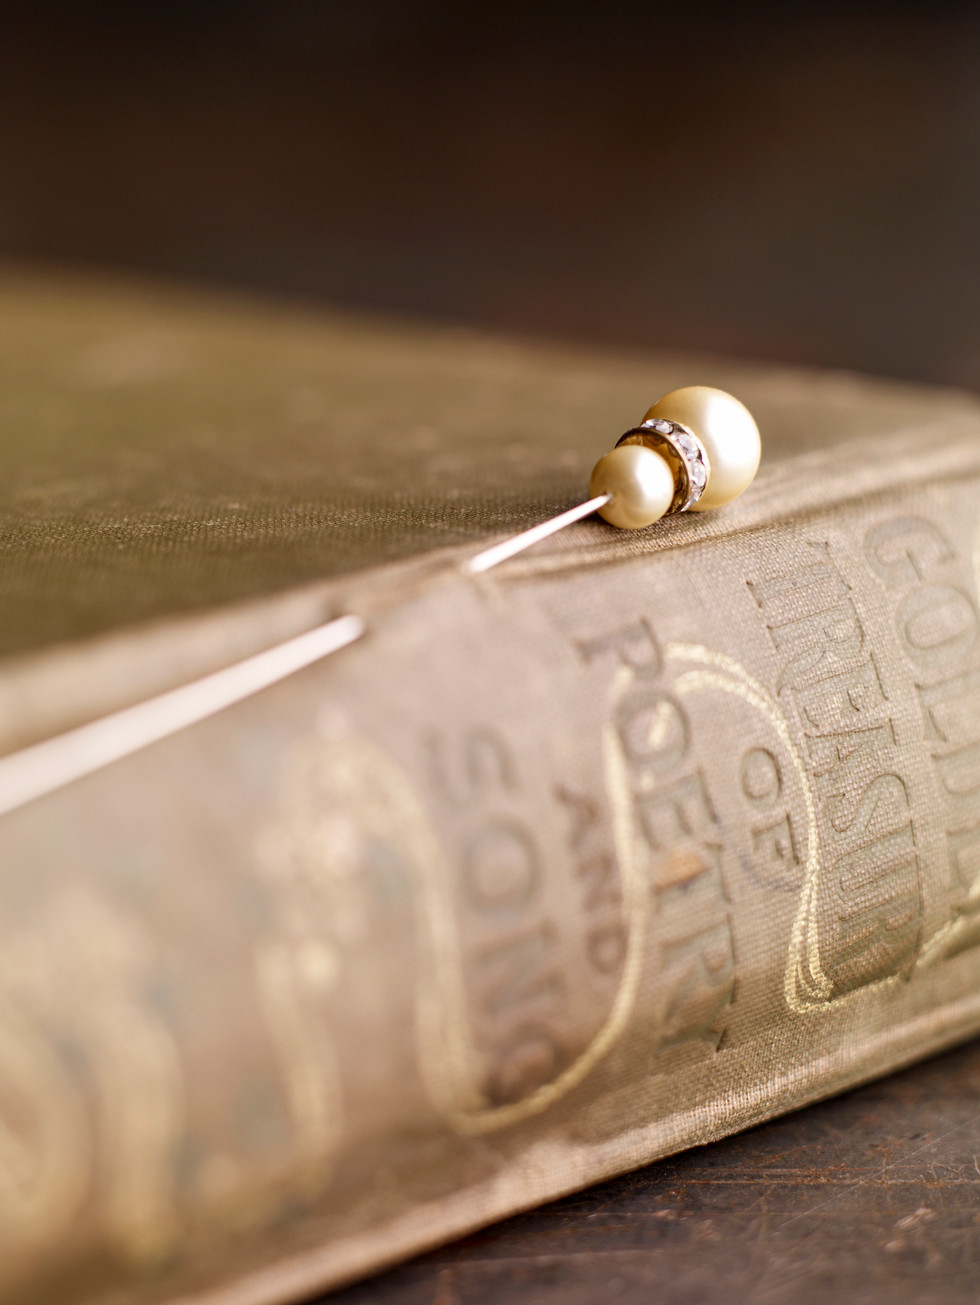 Antique Hat Pin On Book